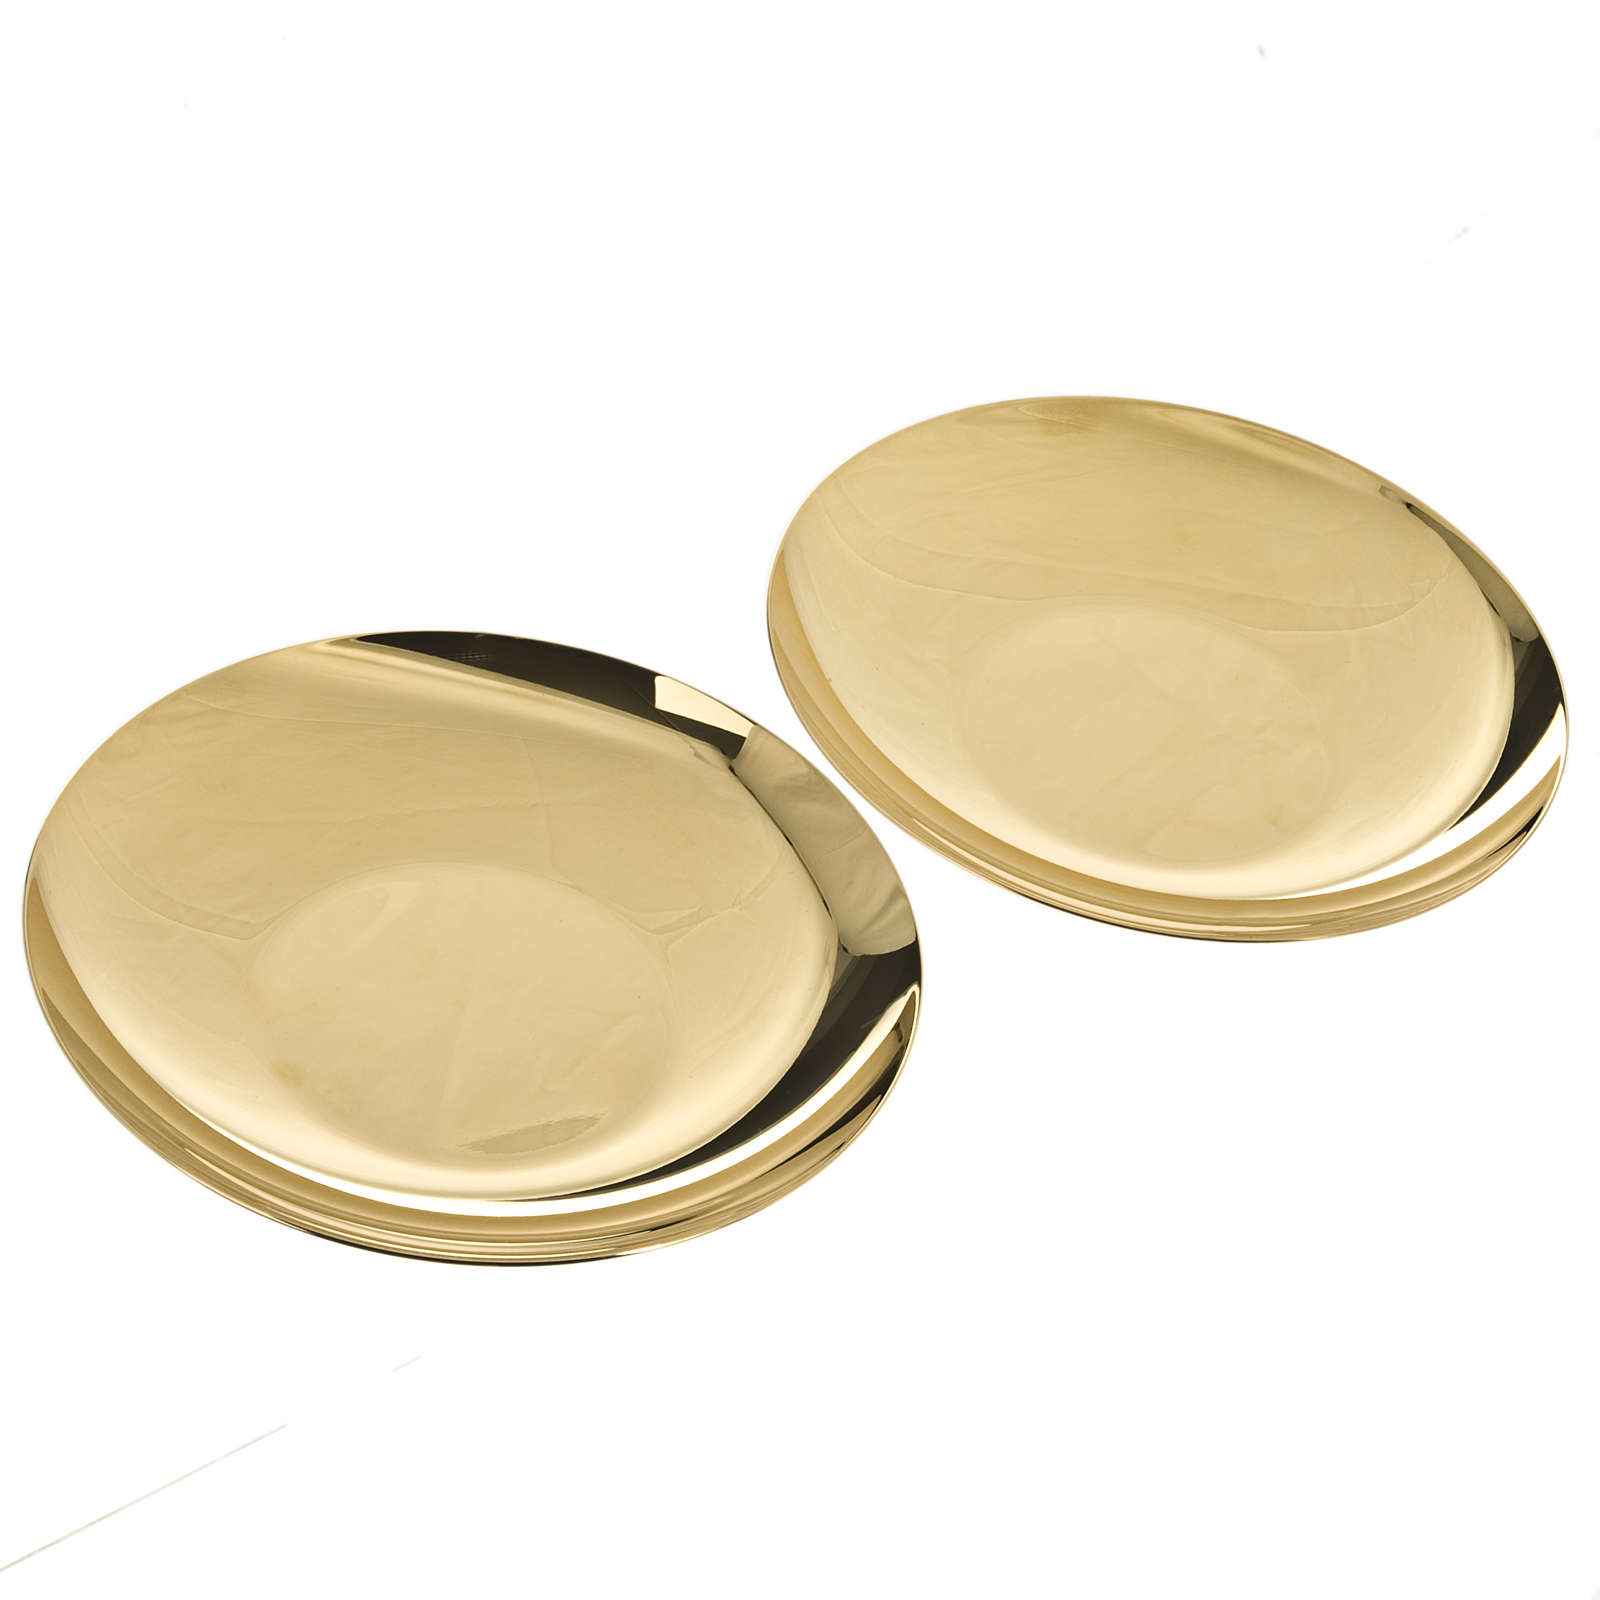 Paten with rounded bottom 4